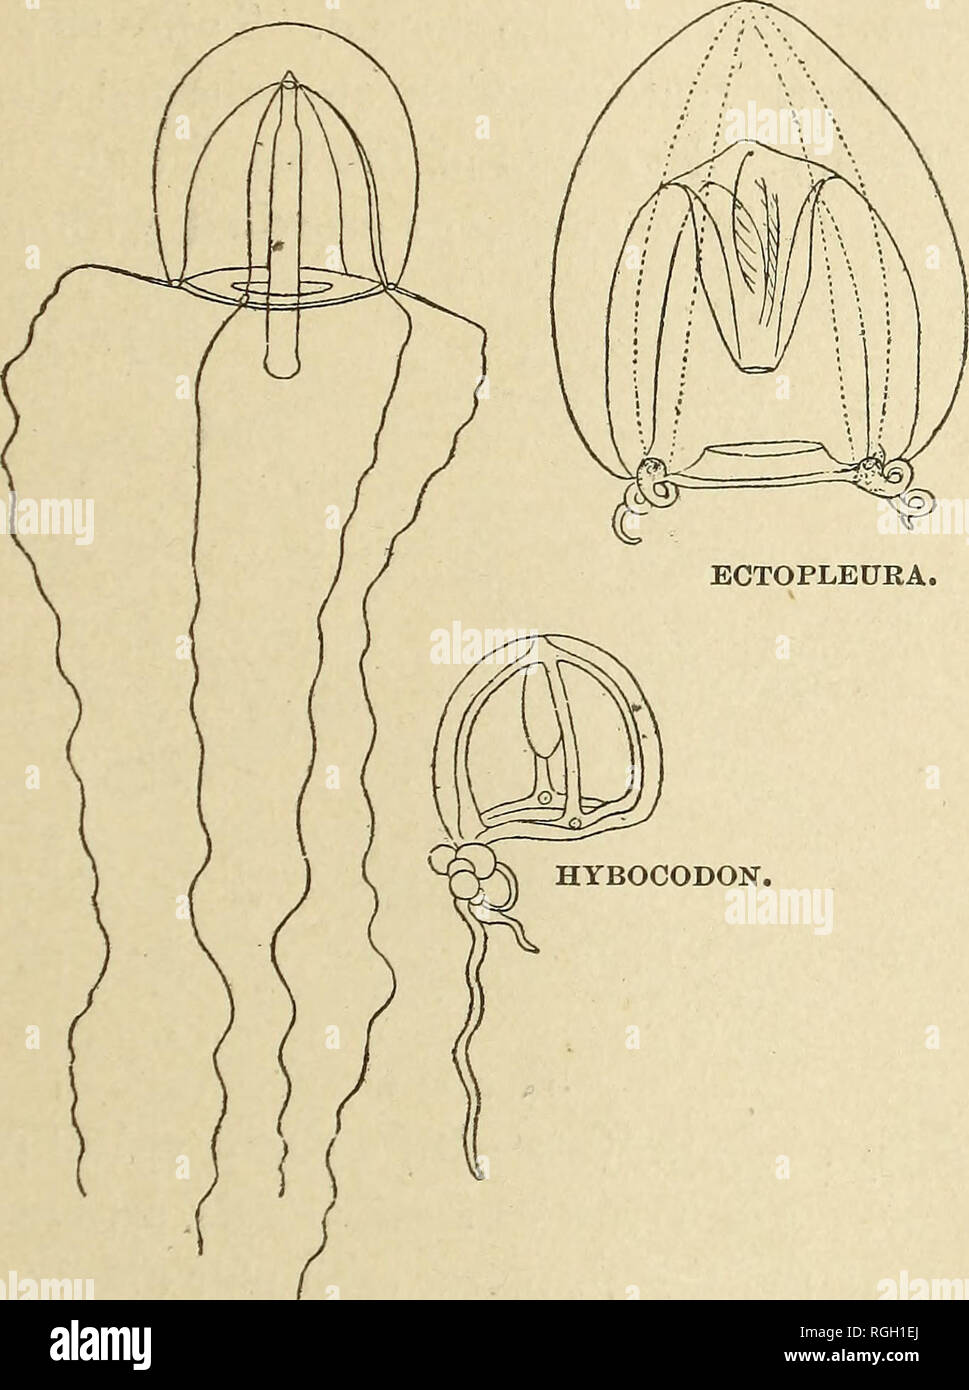 . Bulletin of the Essex Institute. Essex Institute; Natural history; genealogy. ECHINODERMATA OF NEW ENGLAND. 17 the bell. Lips flange-like, extending barely outside the bell-opening. 8. ajpicata, Dinematella. Bell ovate, with tall, conical, apical pro- jection in which is found a cavity shaped like the frus- trum of a cone, and which is in free communication with. SARSIA. that of the proboscis. Tubes four, with jagged edges, broad. Tentacles two, opposite, long, flexible. On the bell-rim between the long tentacles are situated small ten- tacular processes with pigment spots. Proboscis large,  Stock Photo